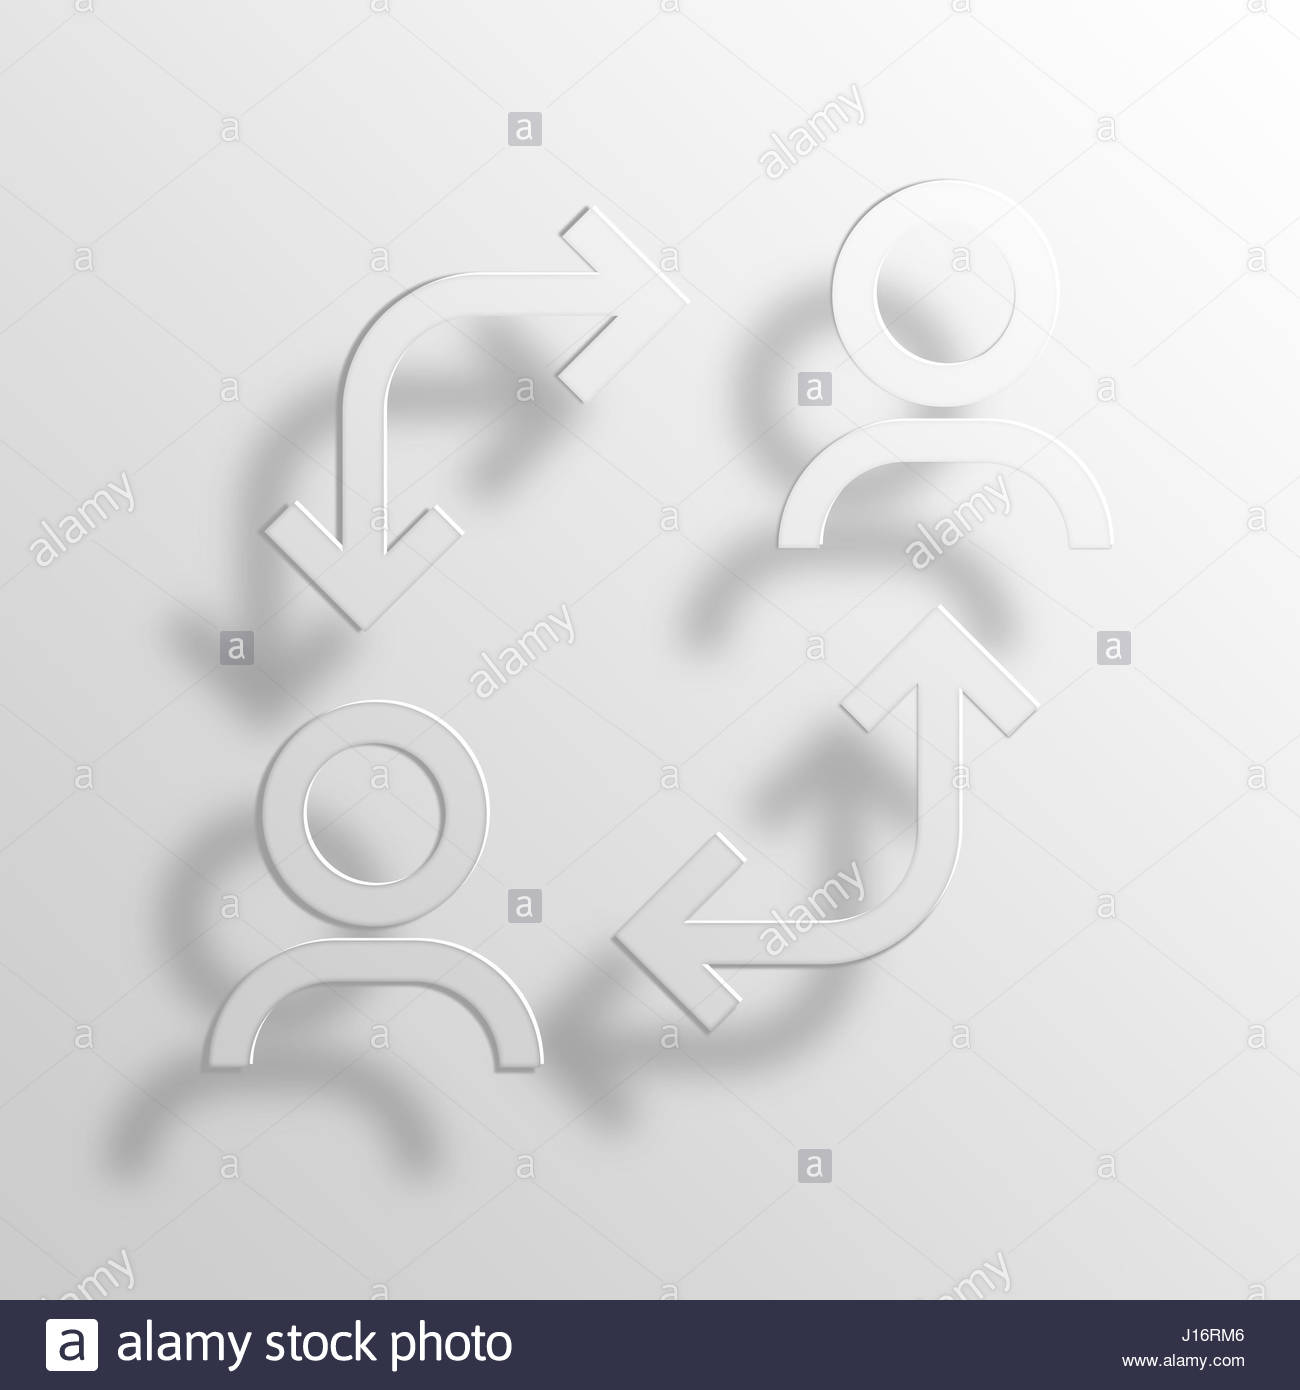 switch 3D Paper Icon Symbol Business Concept No.7040 Stock Photo ...